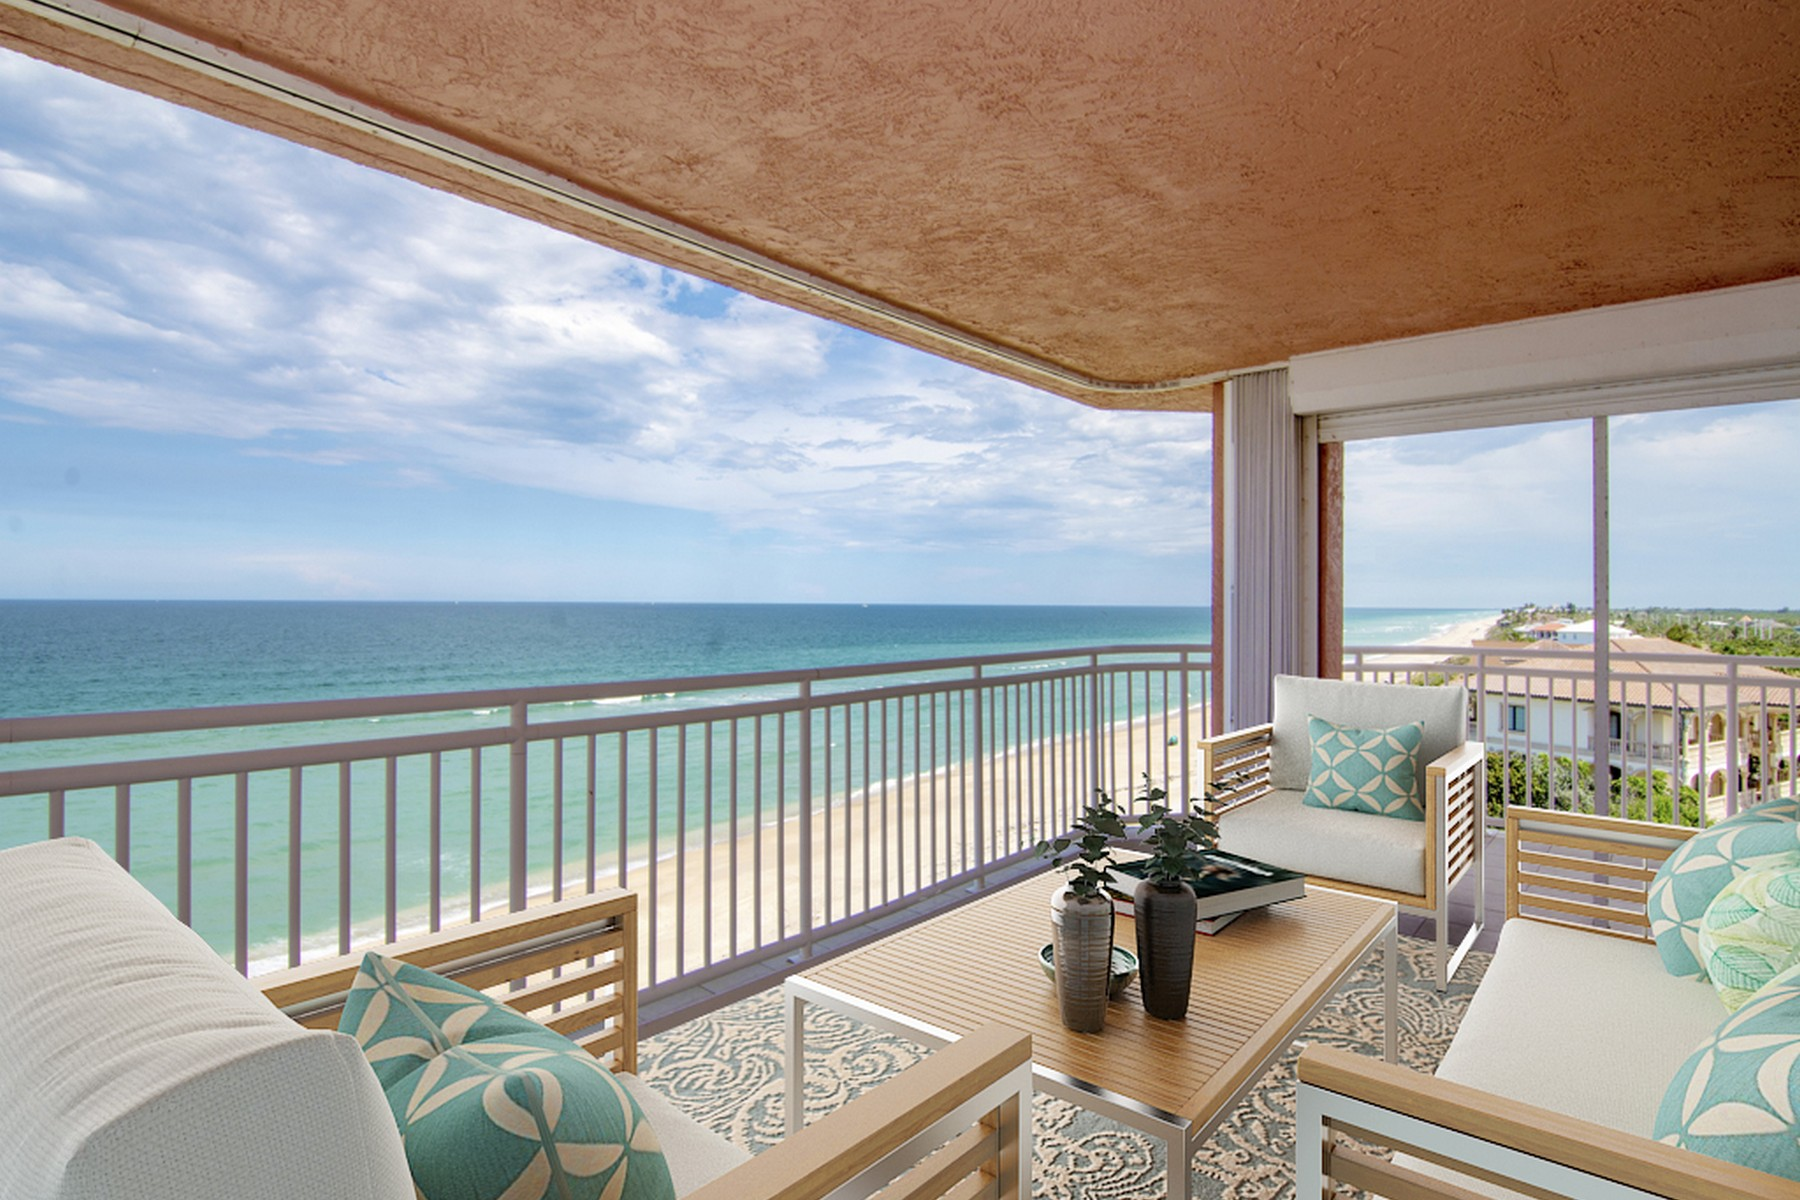 Condominium for Sale at Pristine Oceanfront Condo 5635 S Highway A1A #A704 Melbourne Beach, Florida 32951 United States